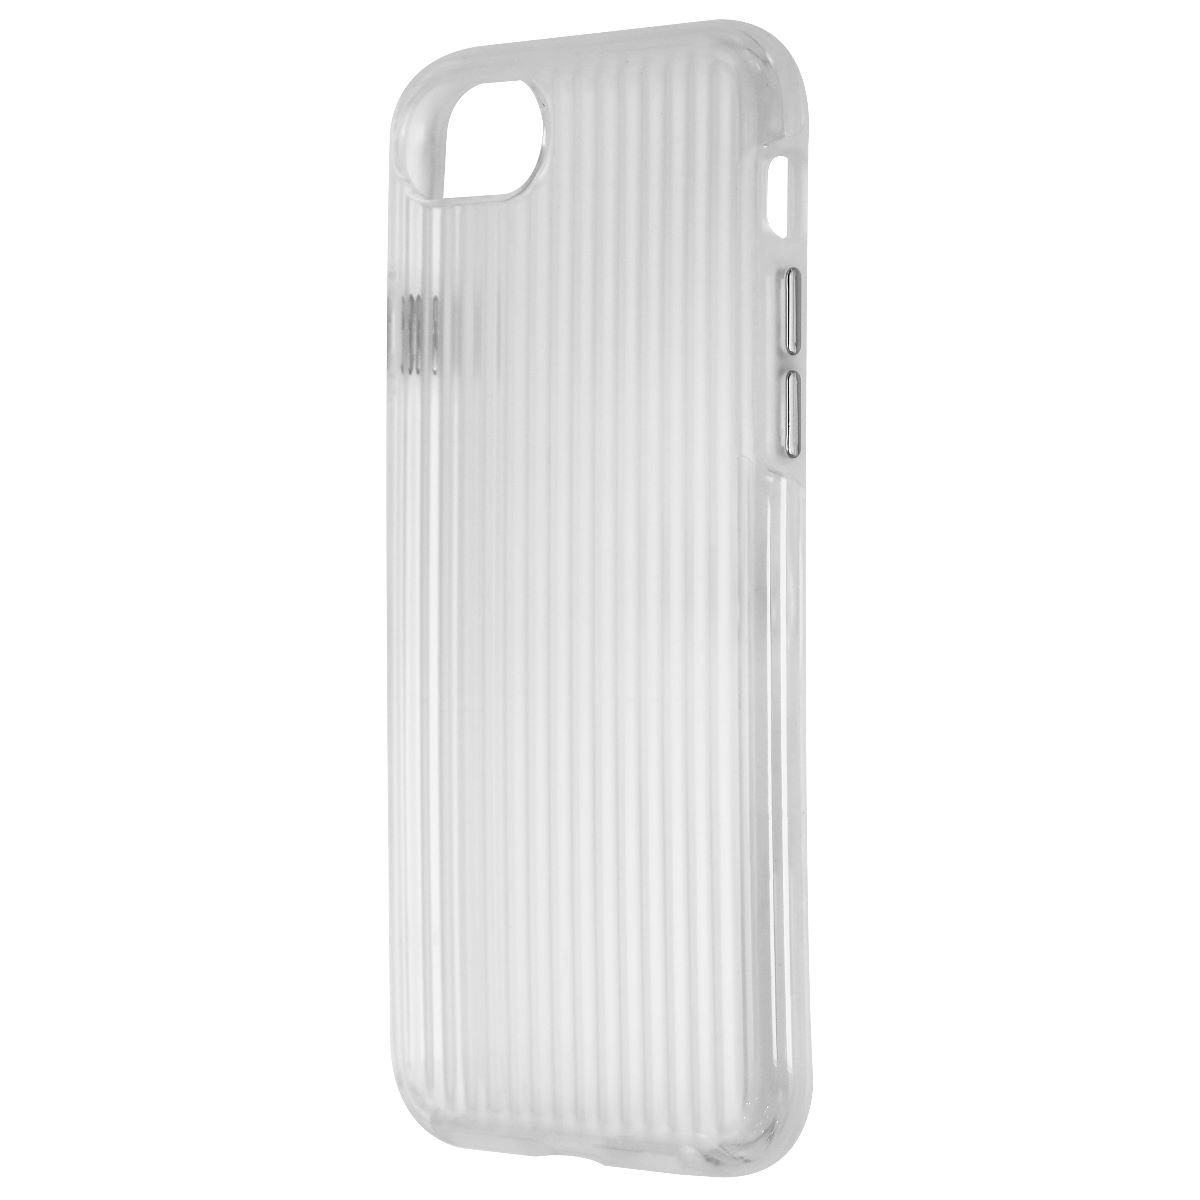 Verizon Textured Hybrid Case for the Apple iPhone 7 Smartphone - Clear